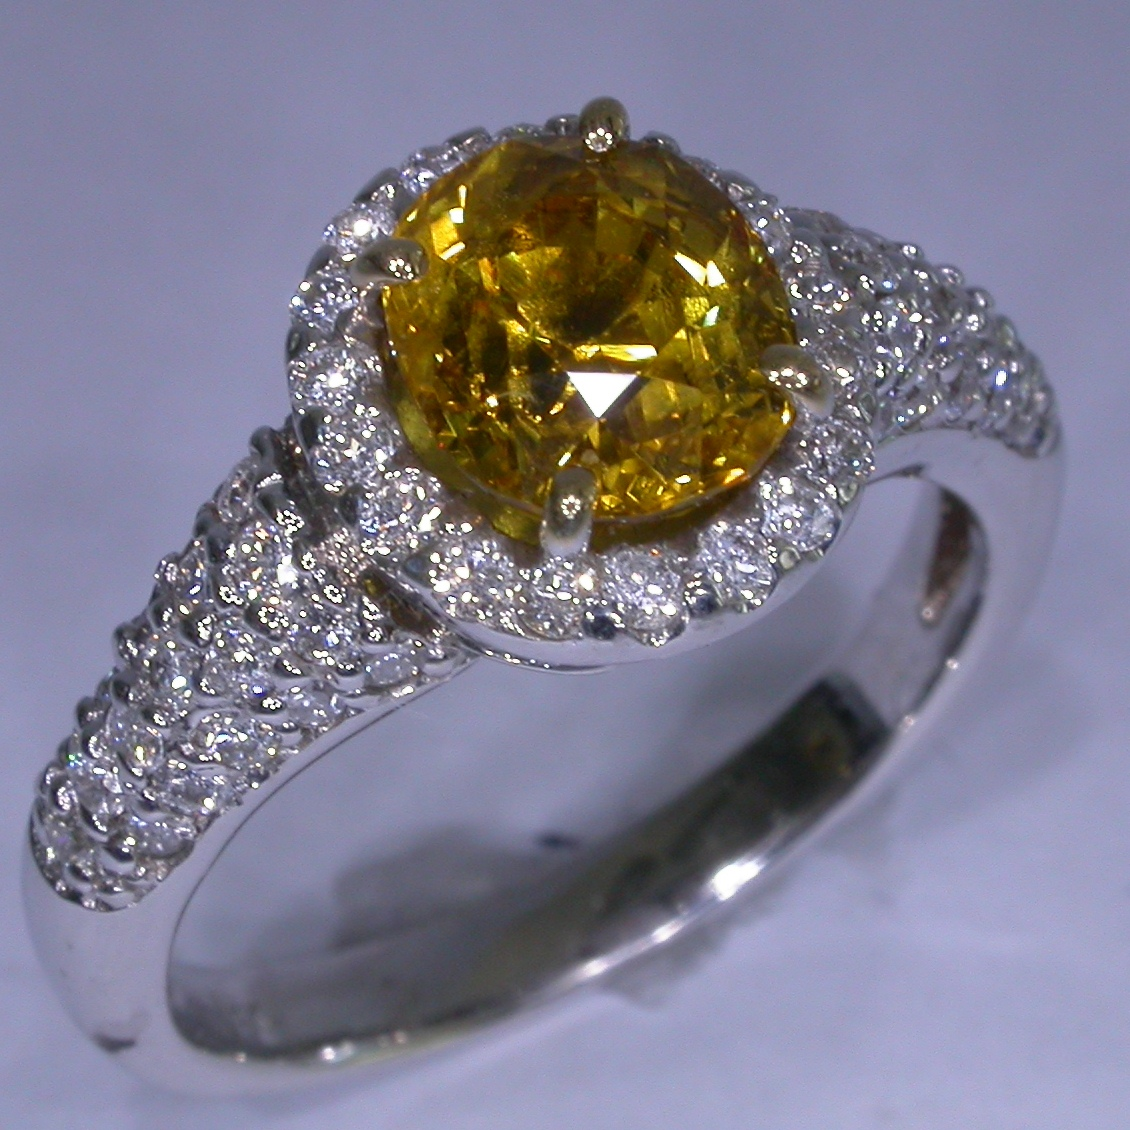 Melbourne Coloured Stone Rings - #7267